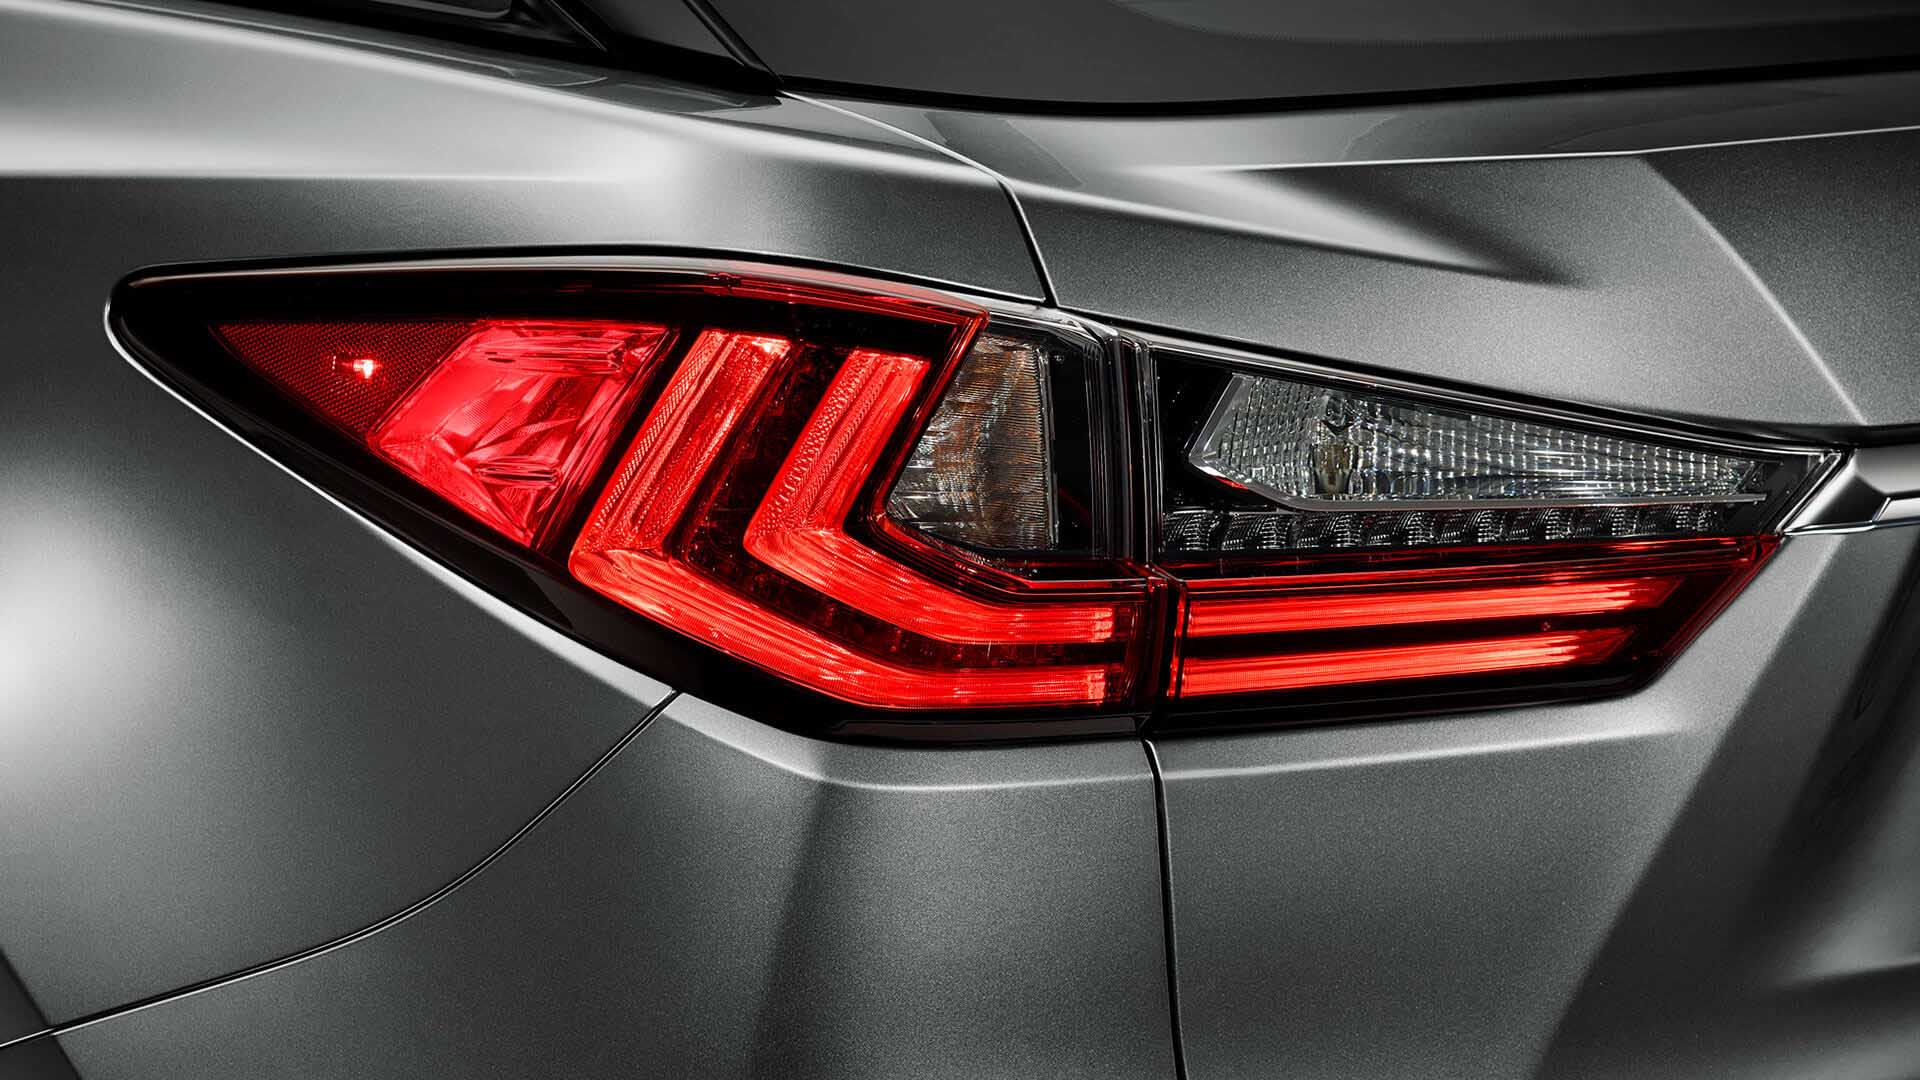 2017 lexus rx 450h features led rear lightd